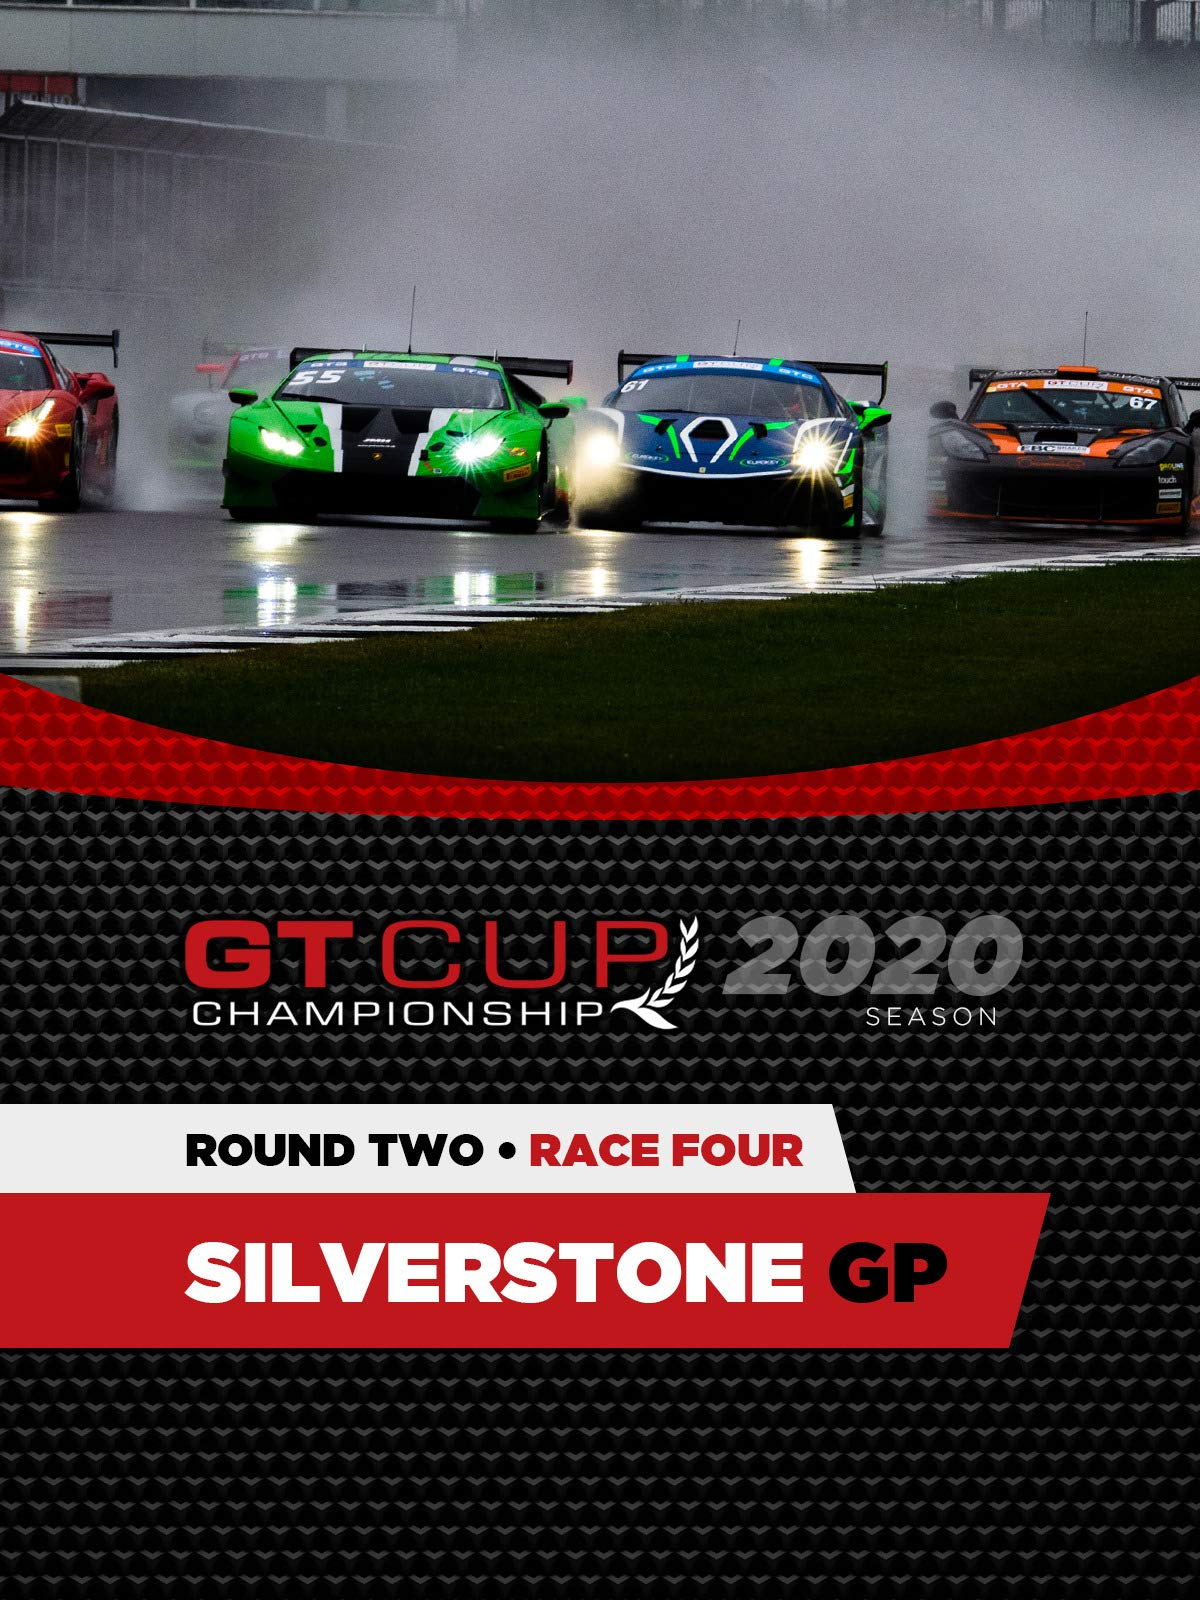 GT Cup 2020 Round TWO Race FOUR